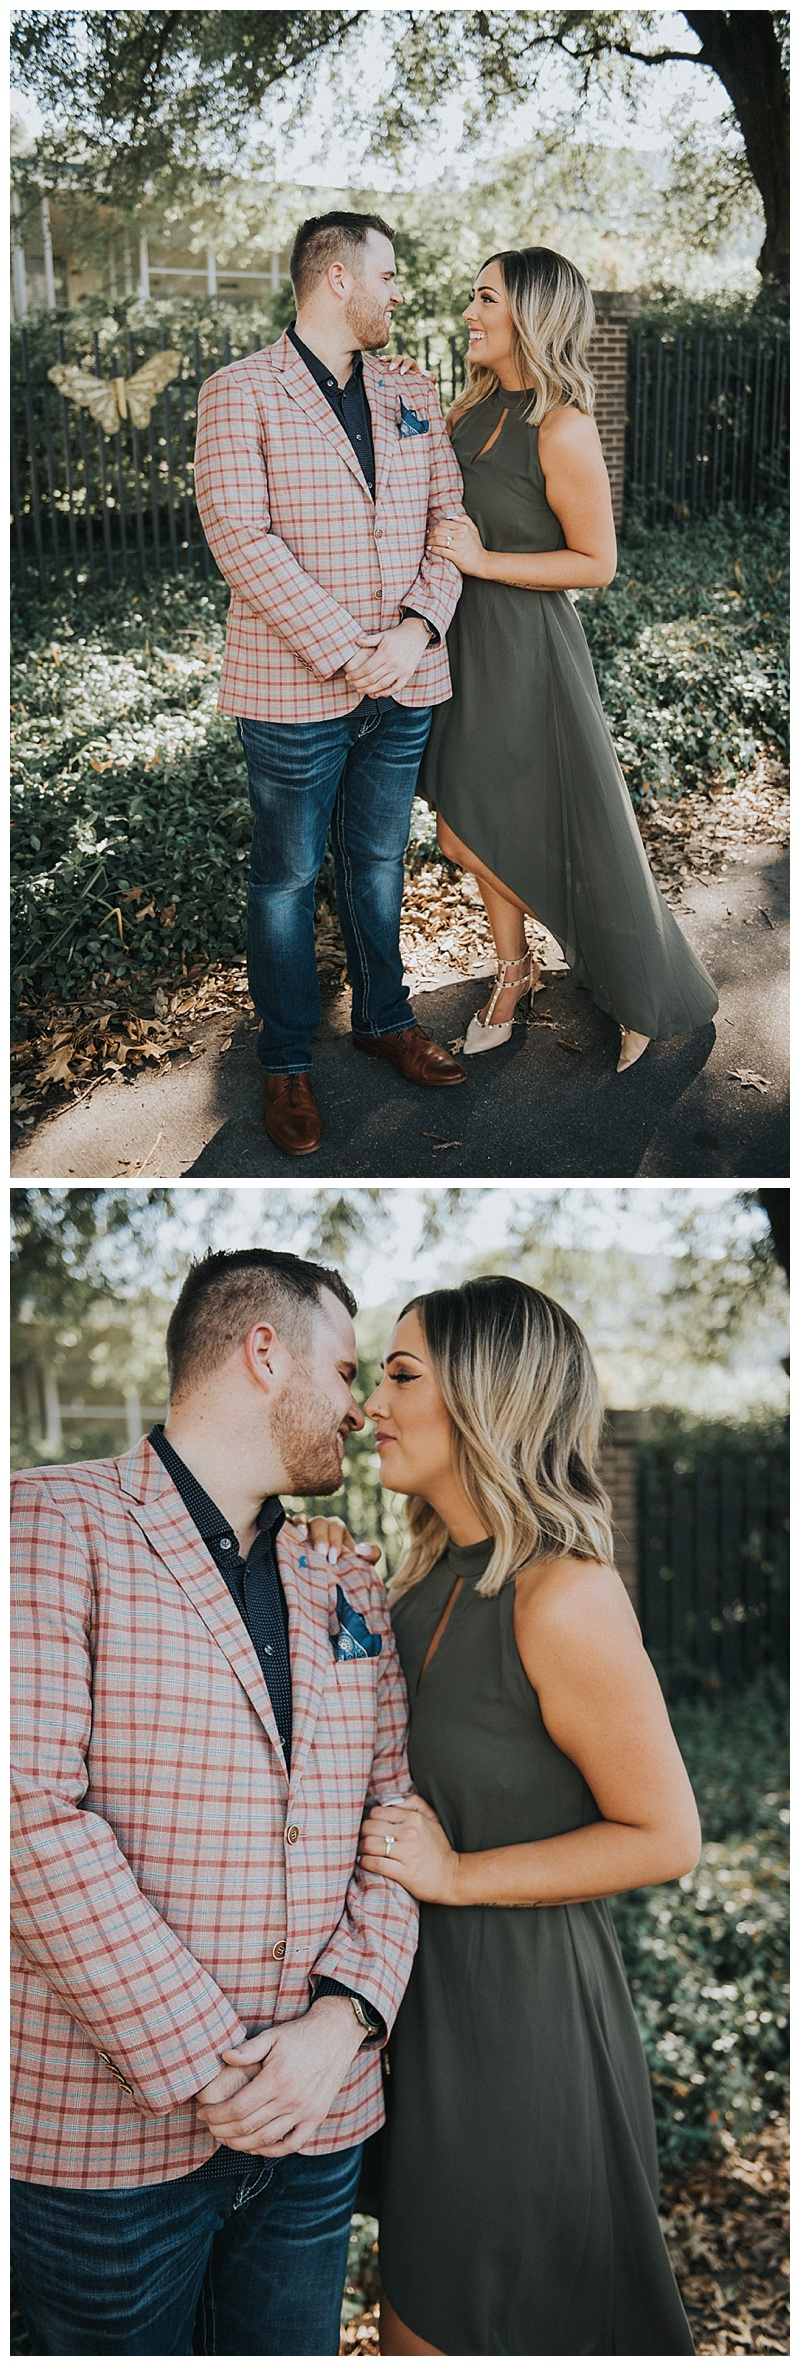 24Whitney Marie Photography. Dallas Wedding Photographer.jpg